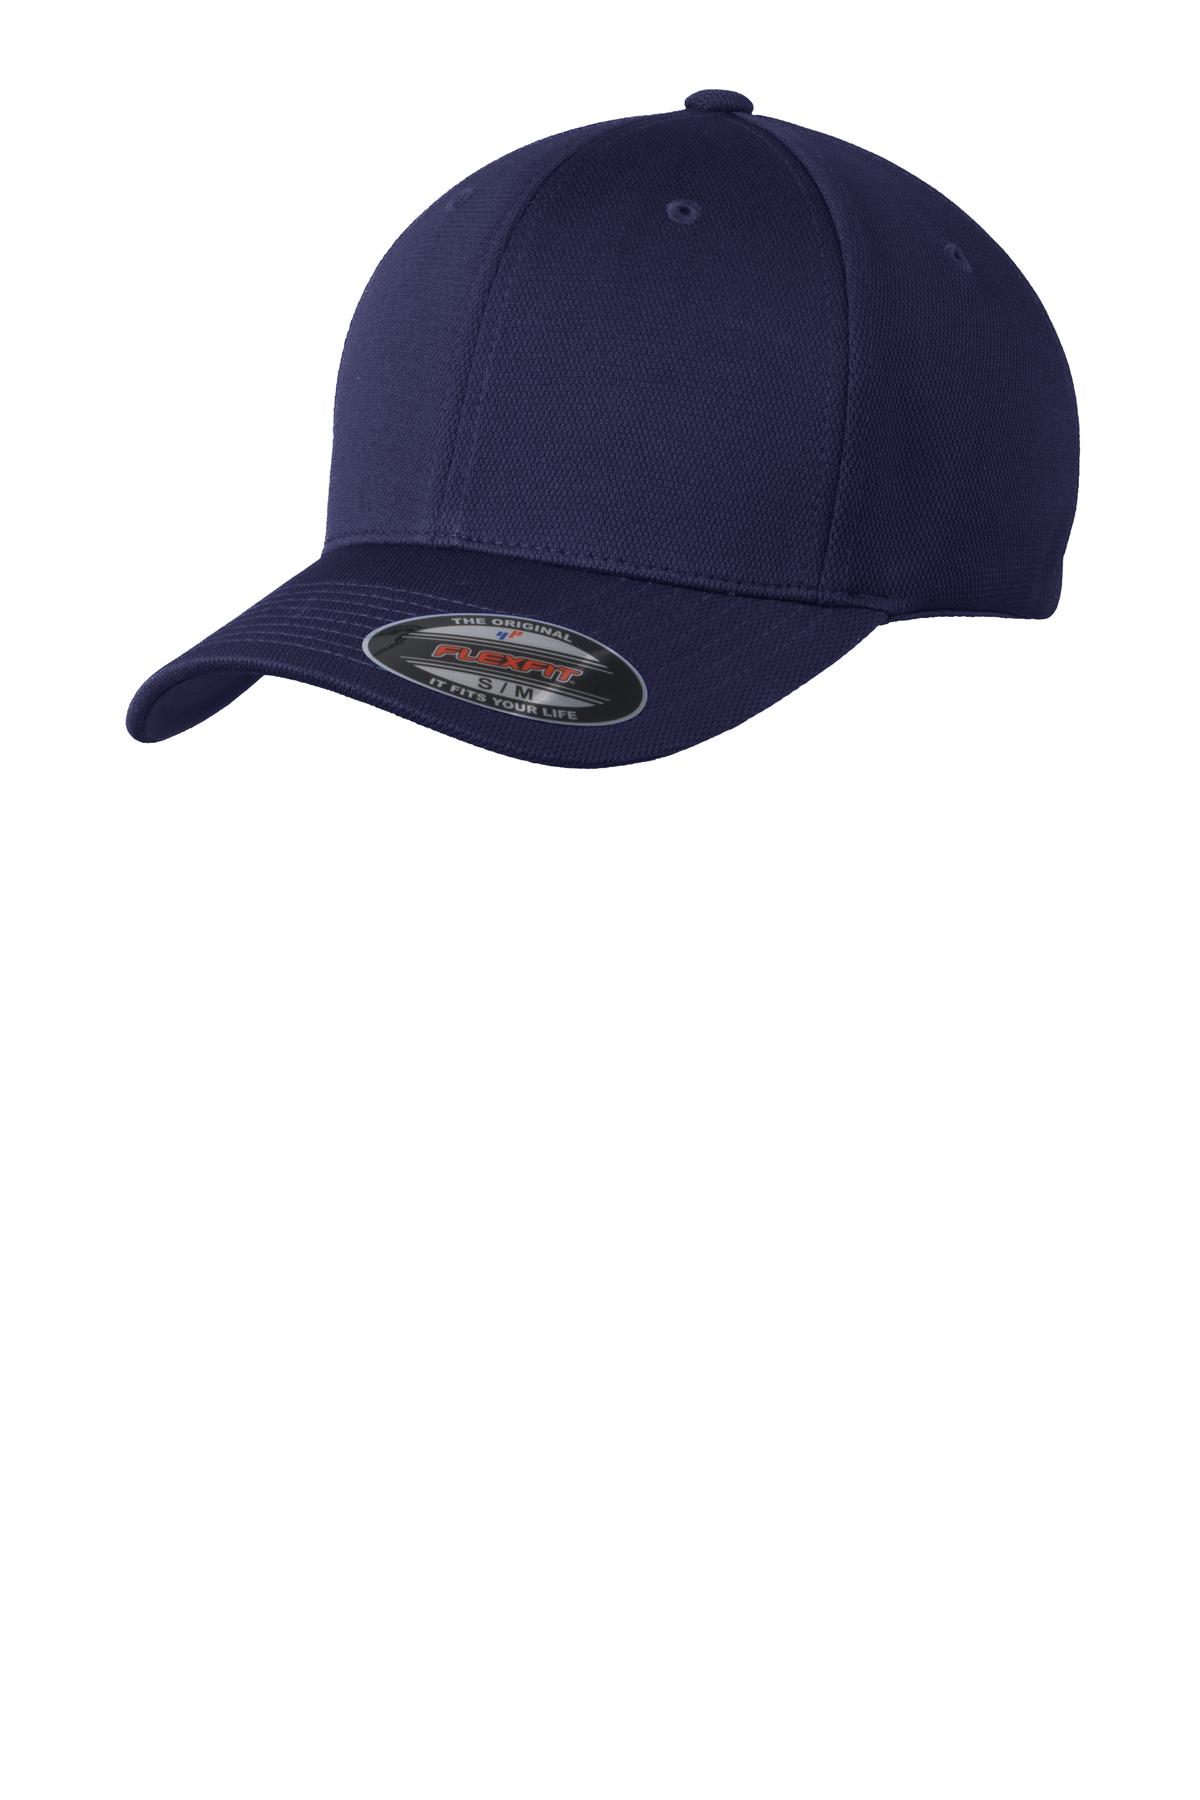 Sport-Tek ®  Flexfit ®  Cool & Dry Poly Block Mesh Cap. STC22 - True Navy